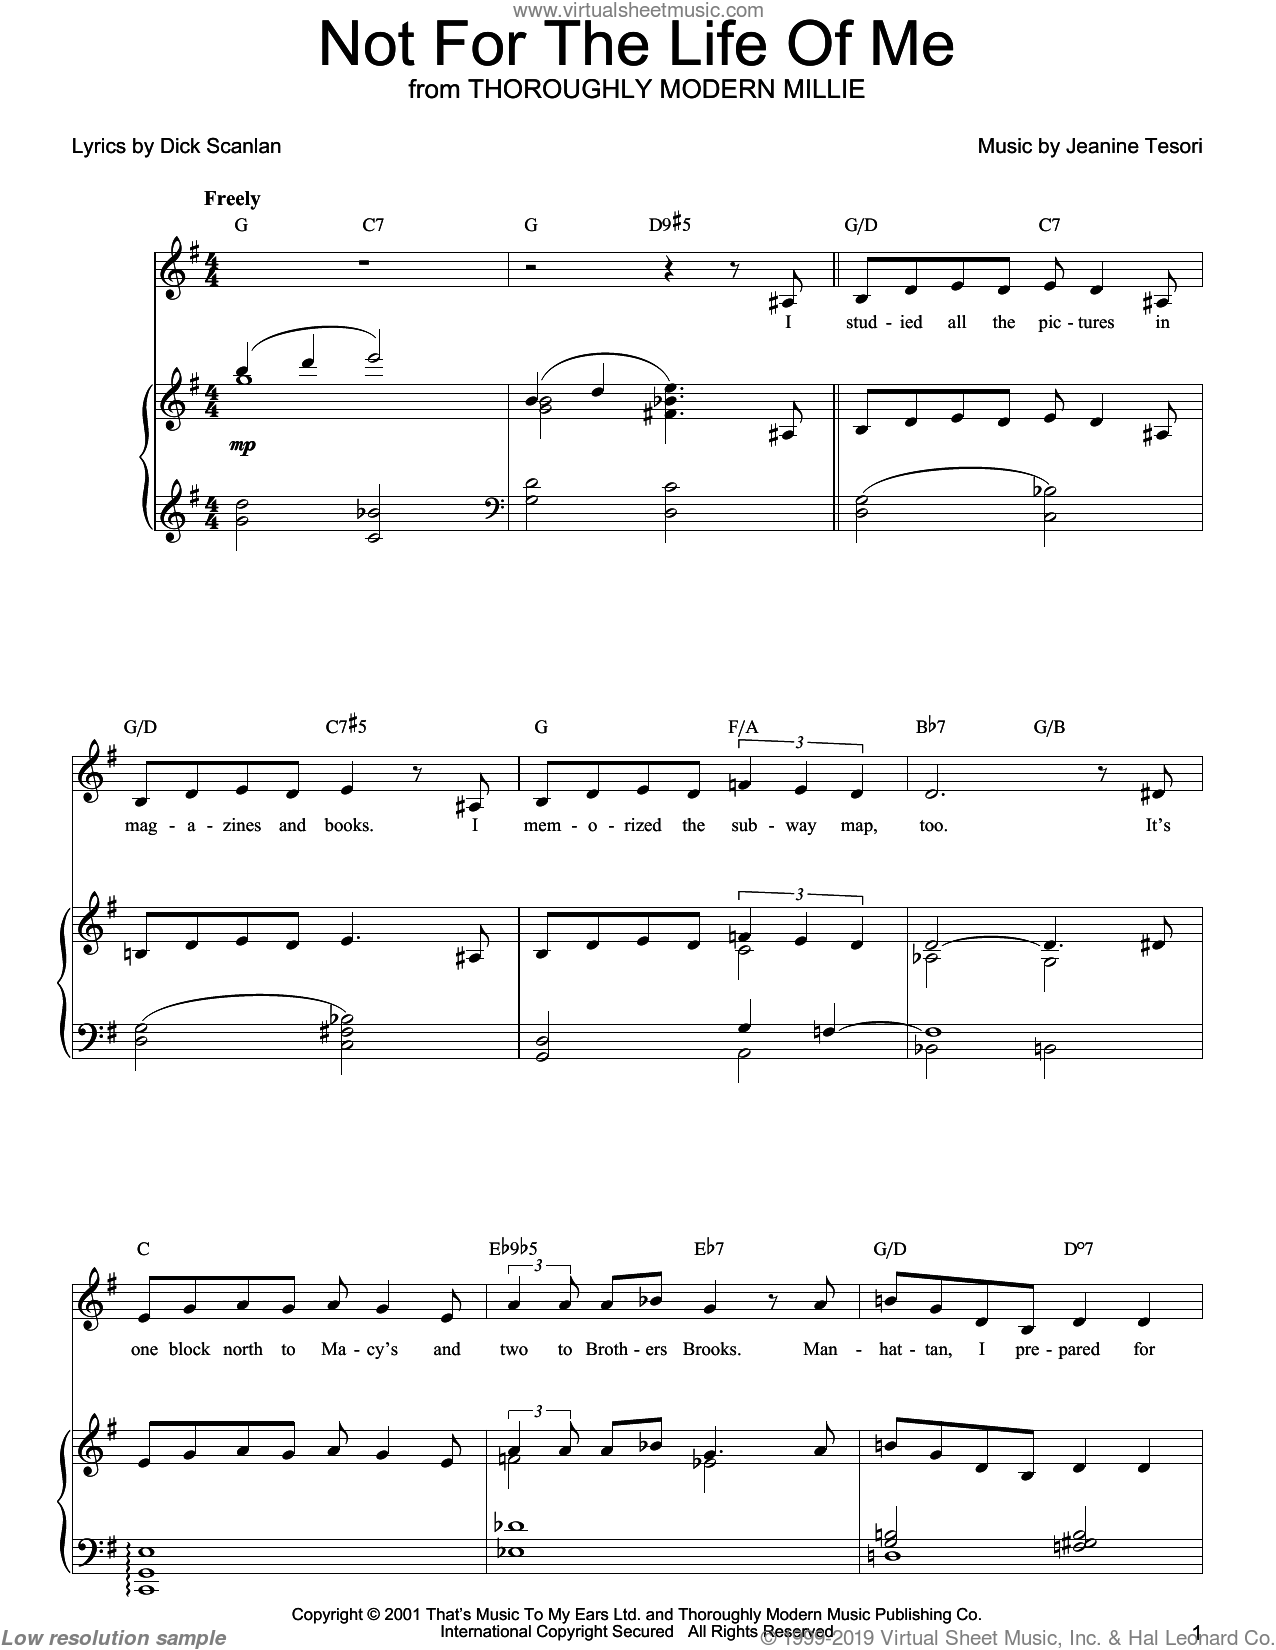 Not For The Life Of Me sheet music for voice, piano or guitar by Jeanine Tesori